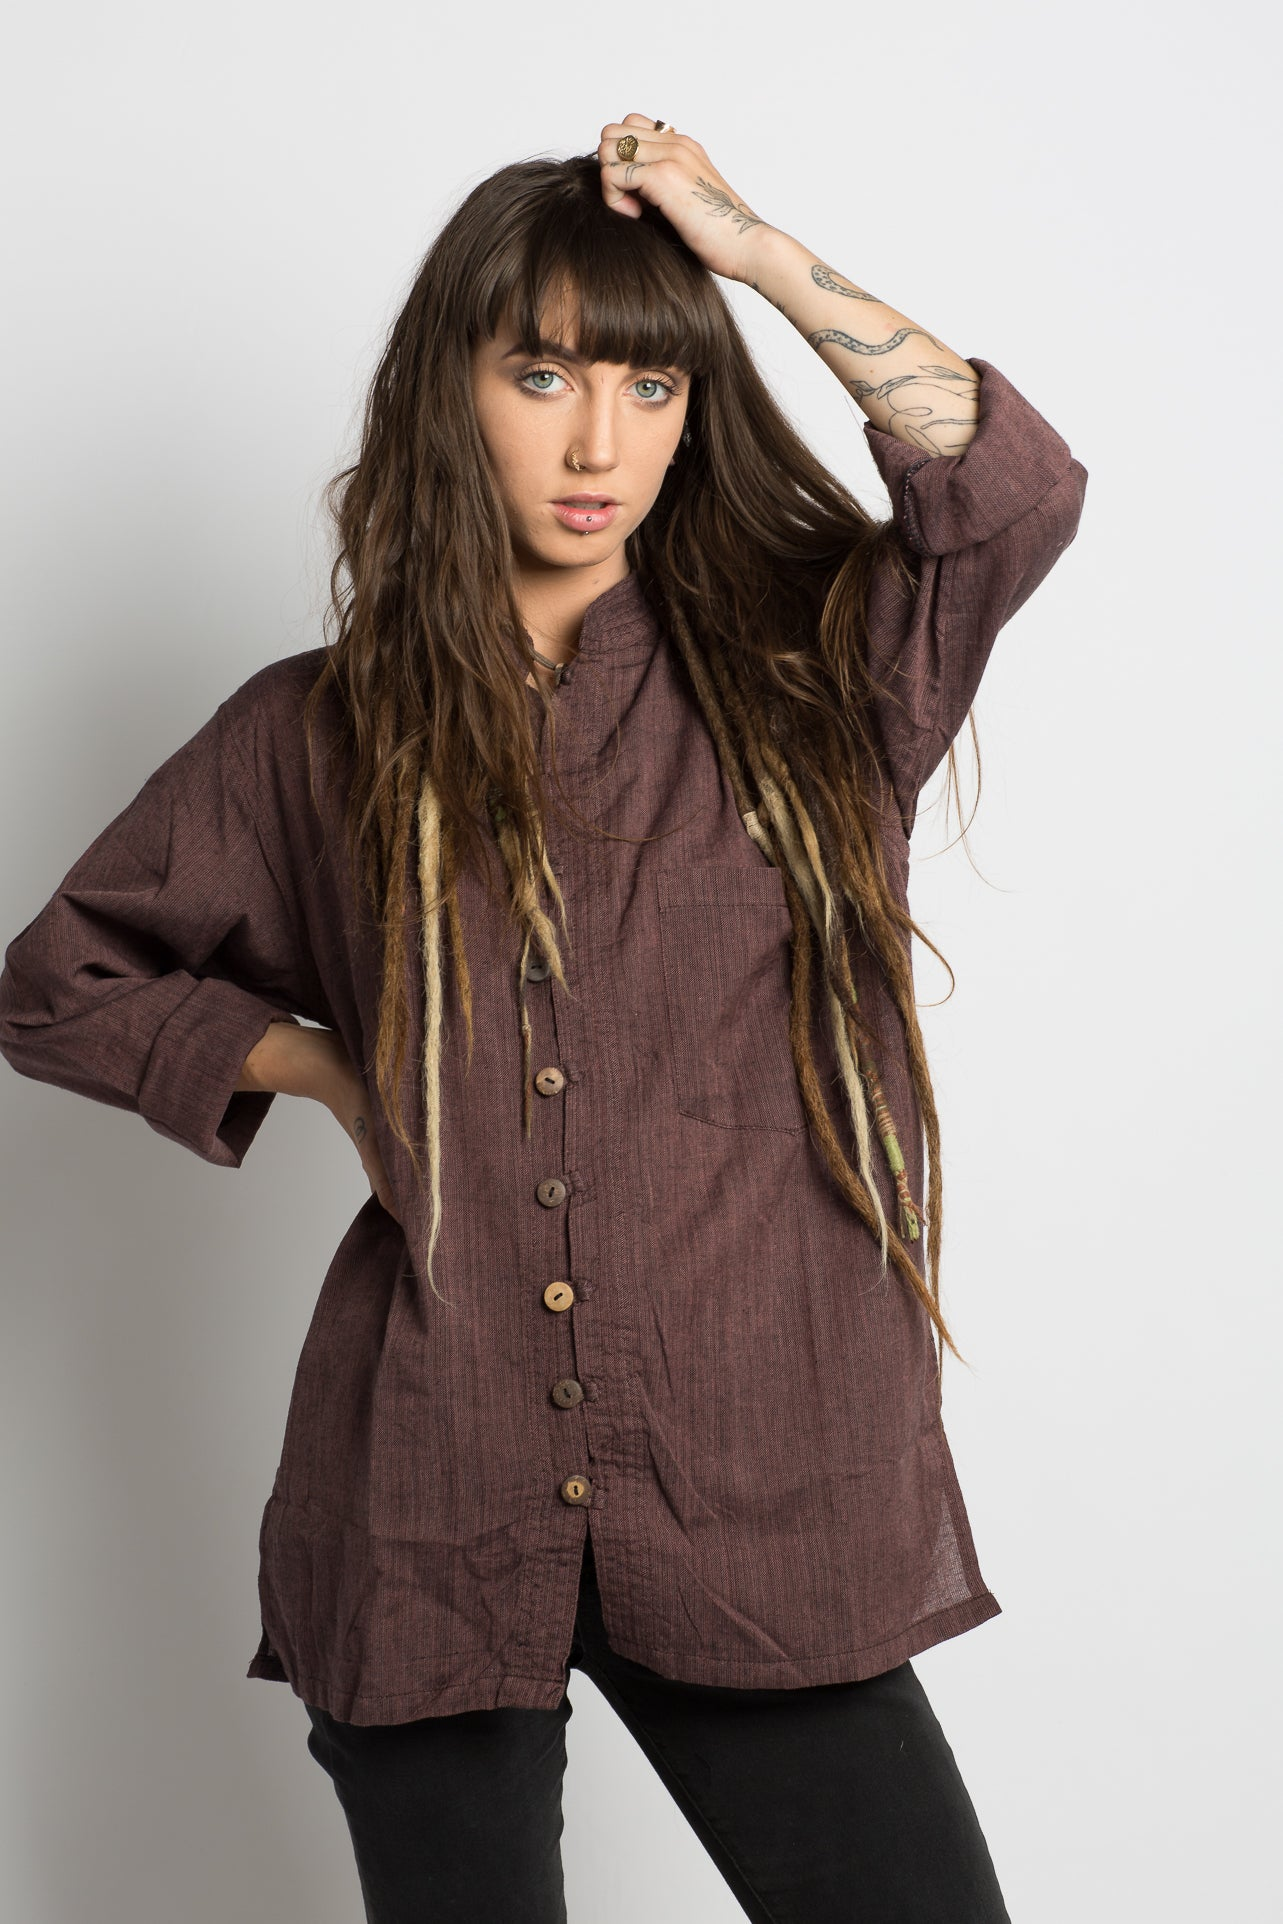 Earthy Handmade Unisex Nepalese Button Up